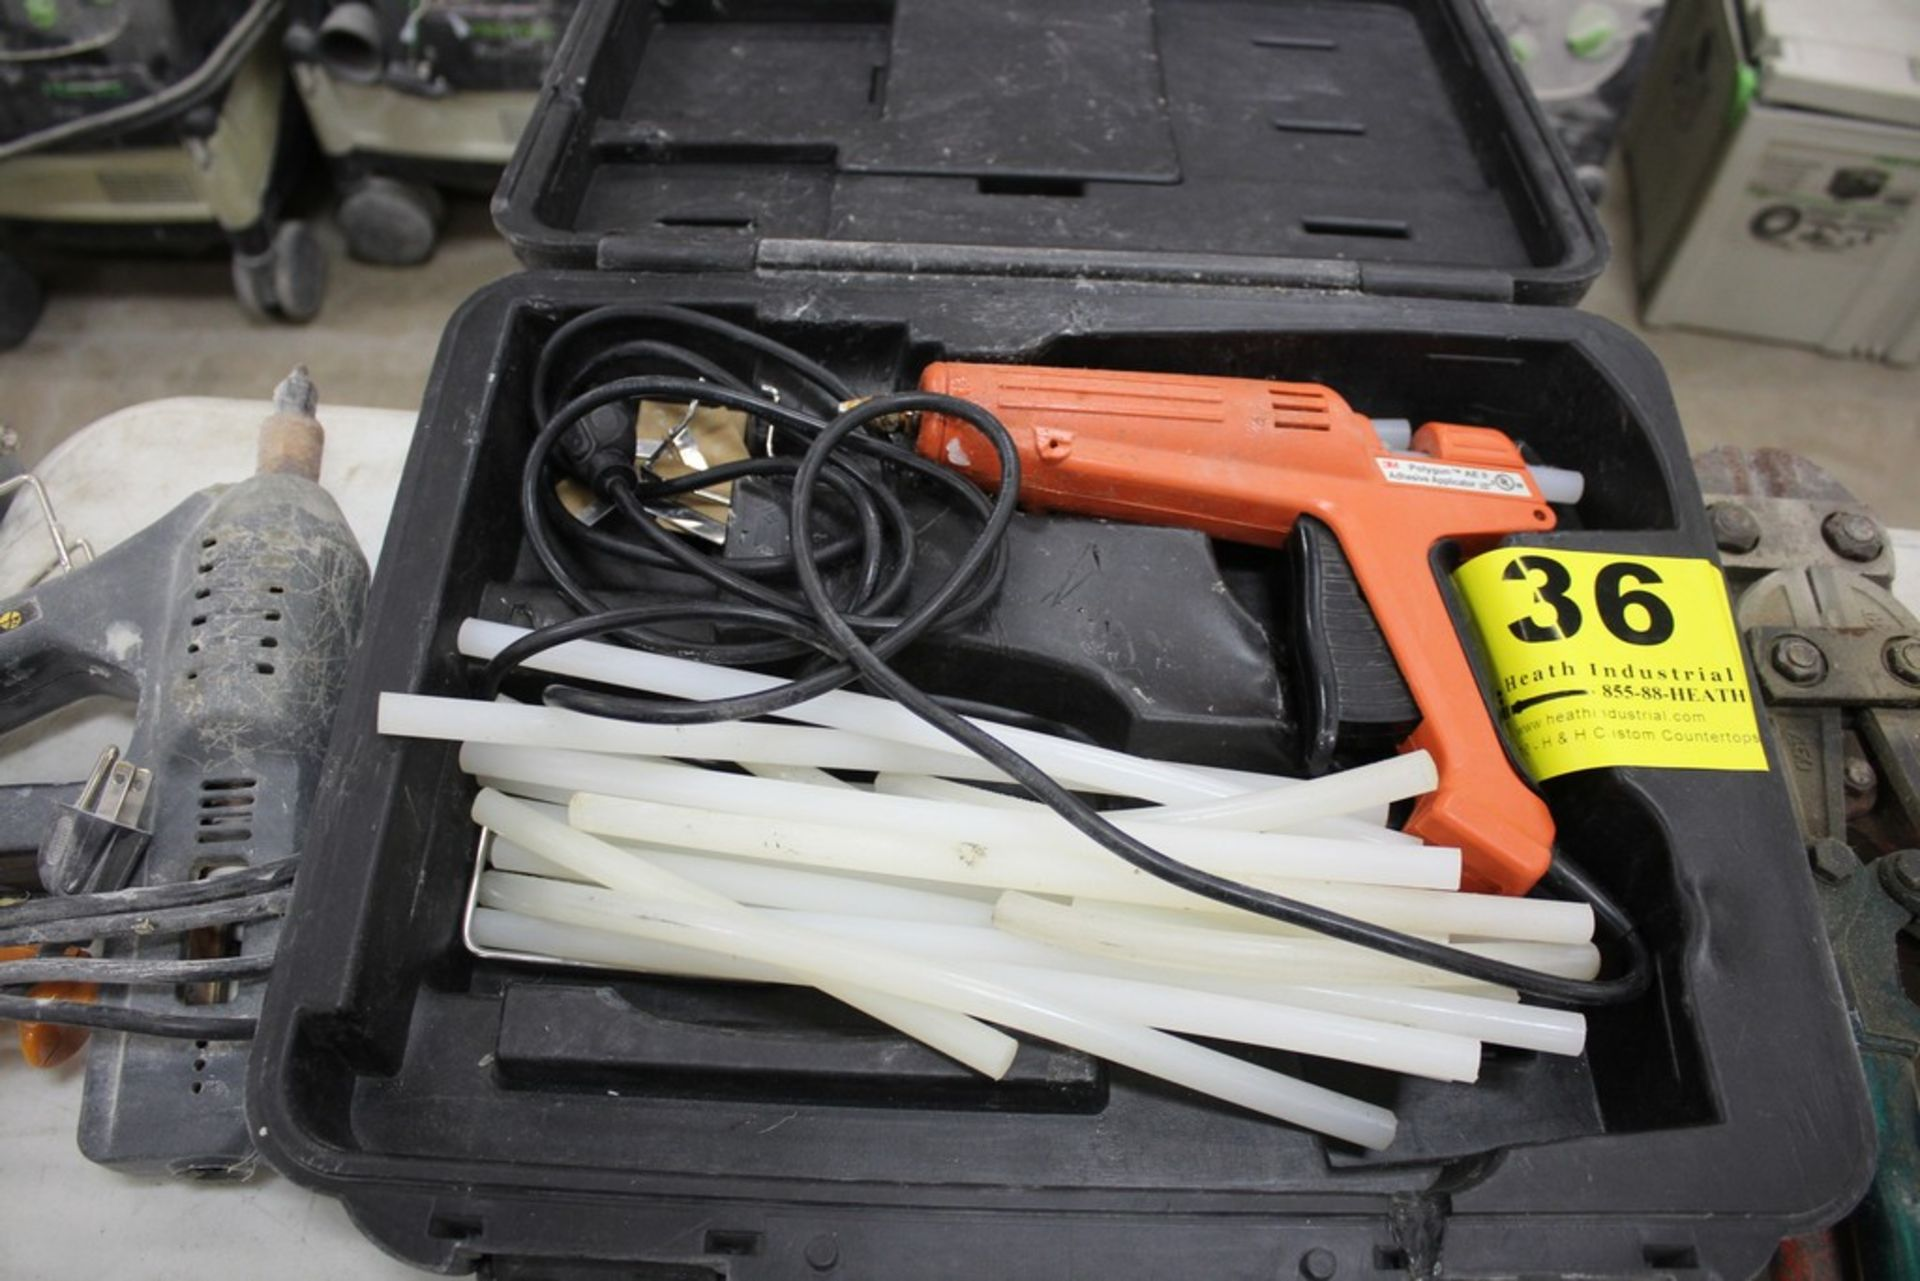 Lot 36 - 3M POLYGUN ADHESIVE APPLICATOR